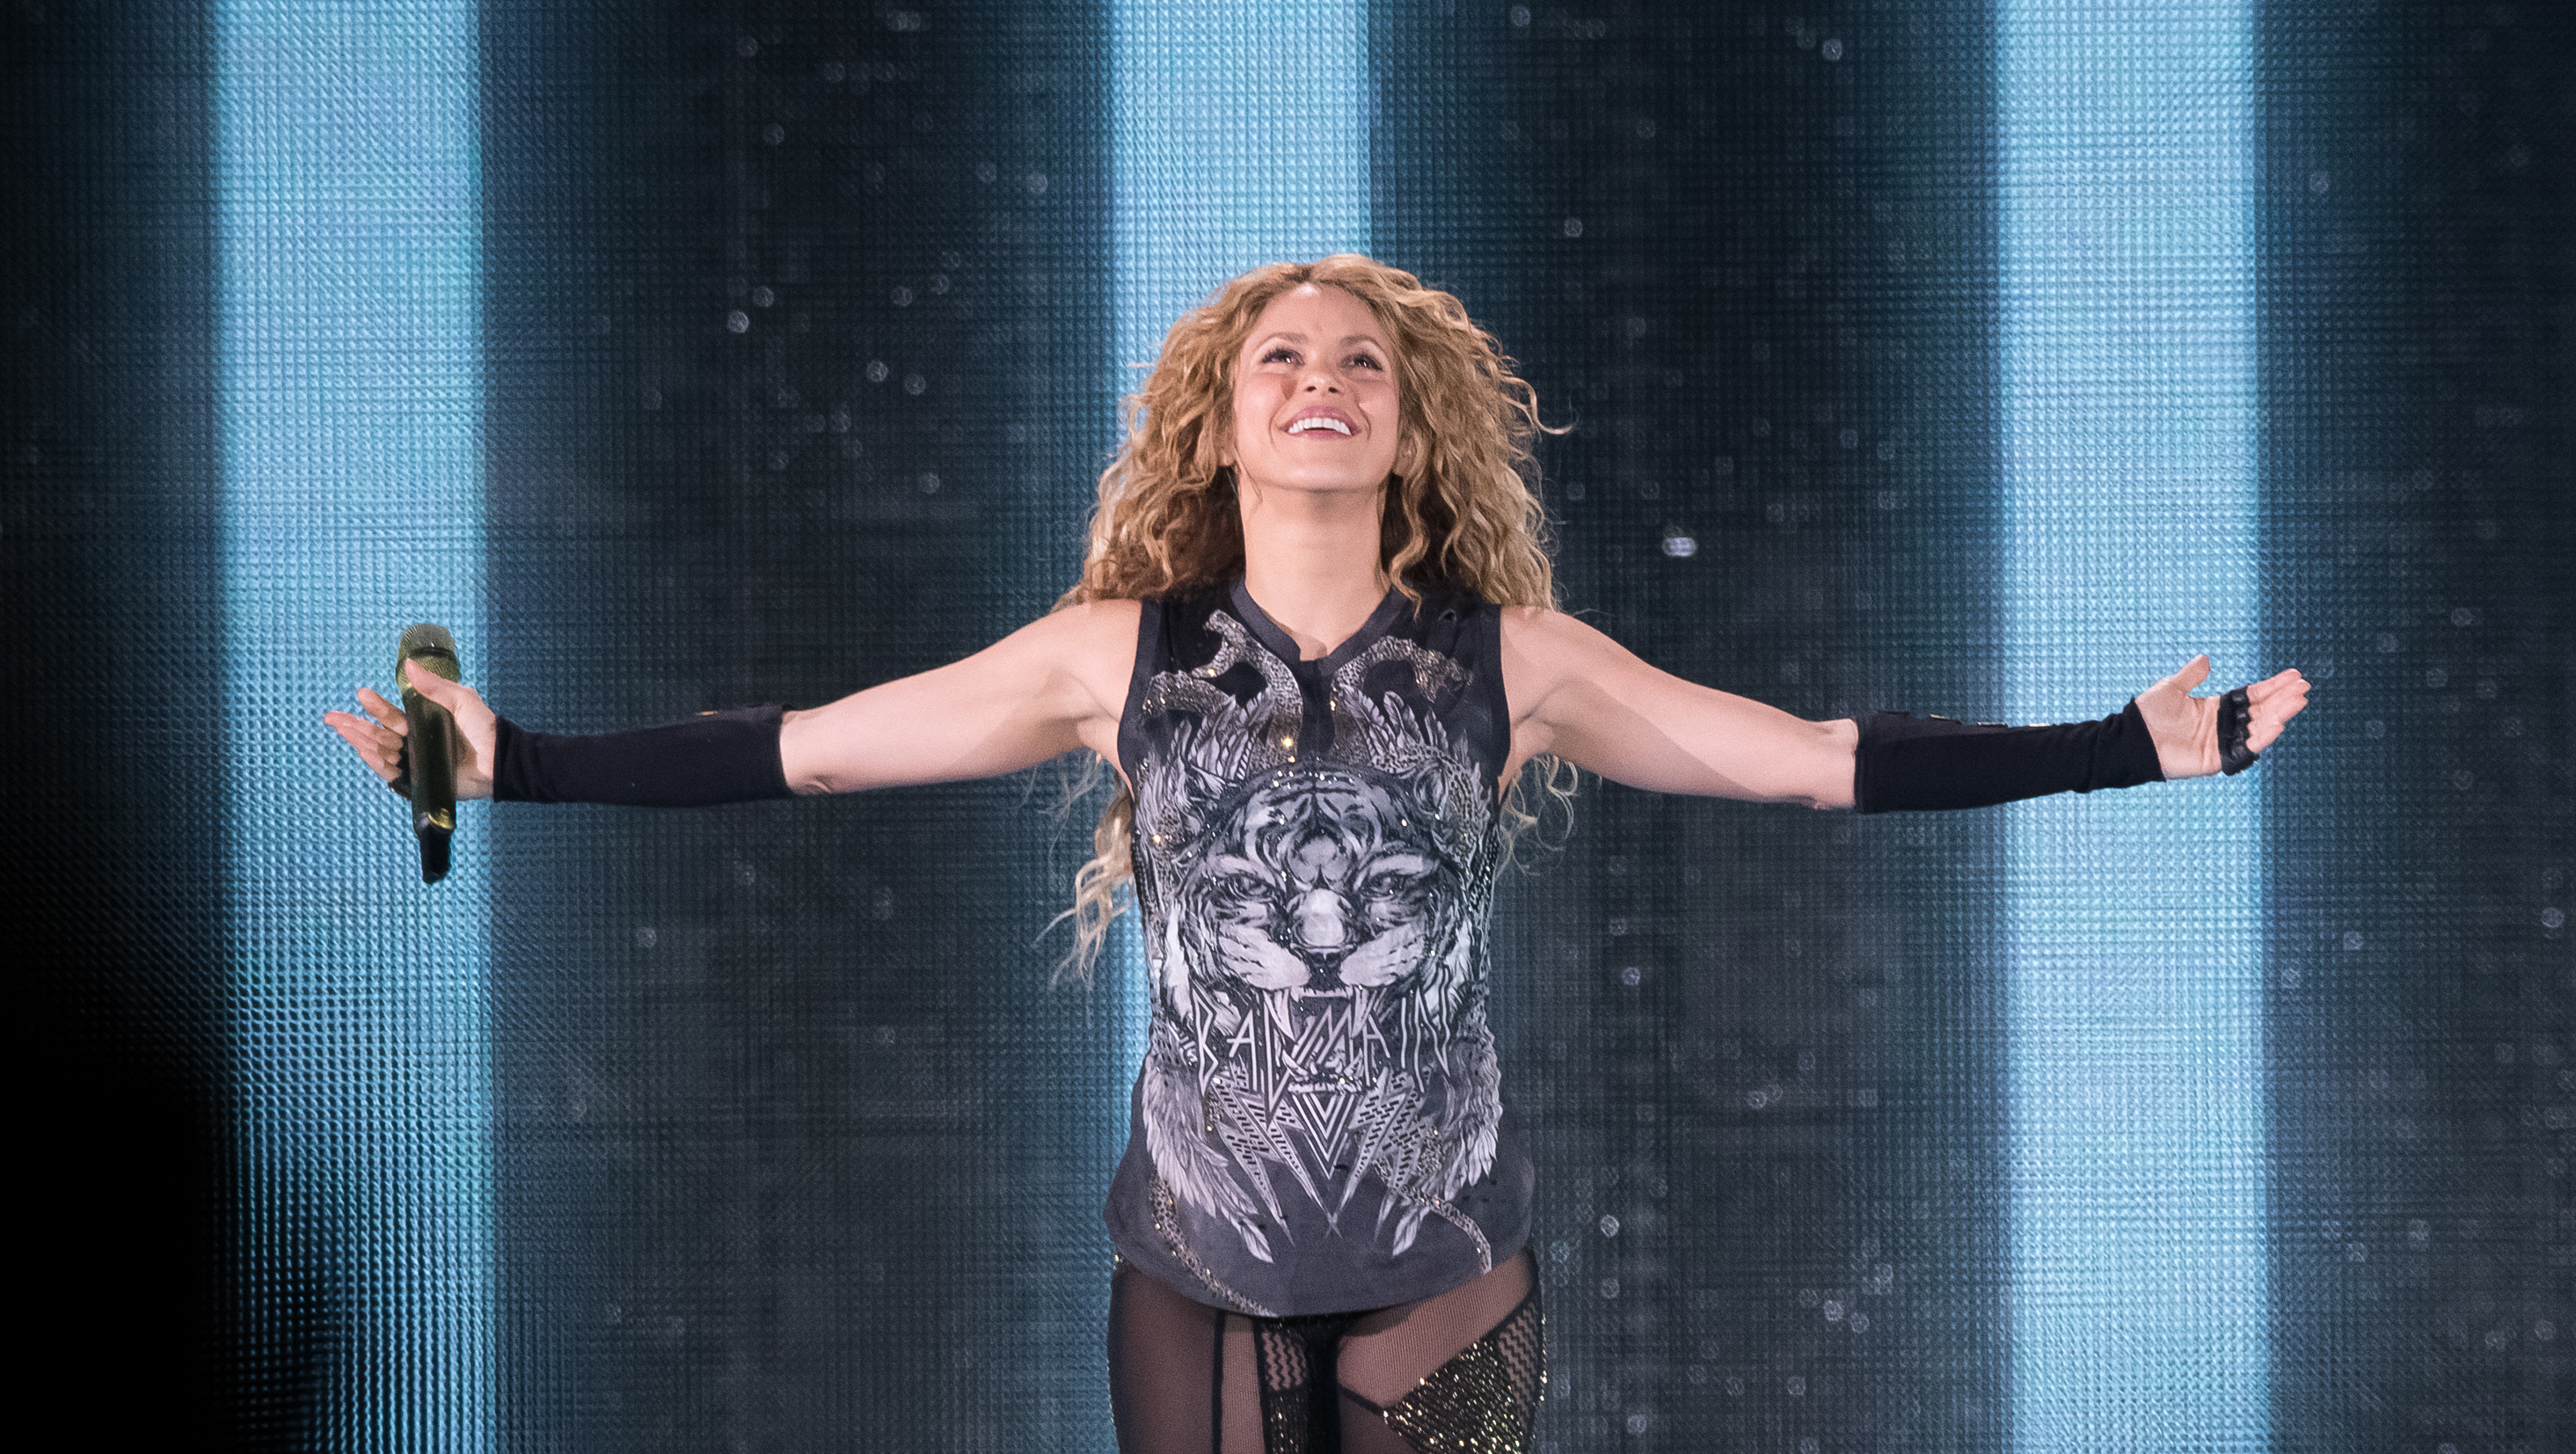 Is Shakira Going to Headline the 2020 Super Bowl?